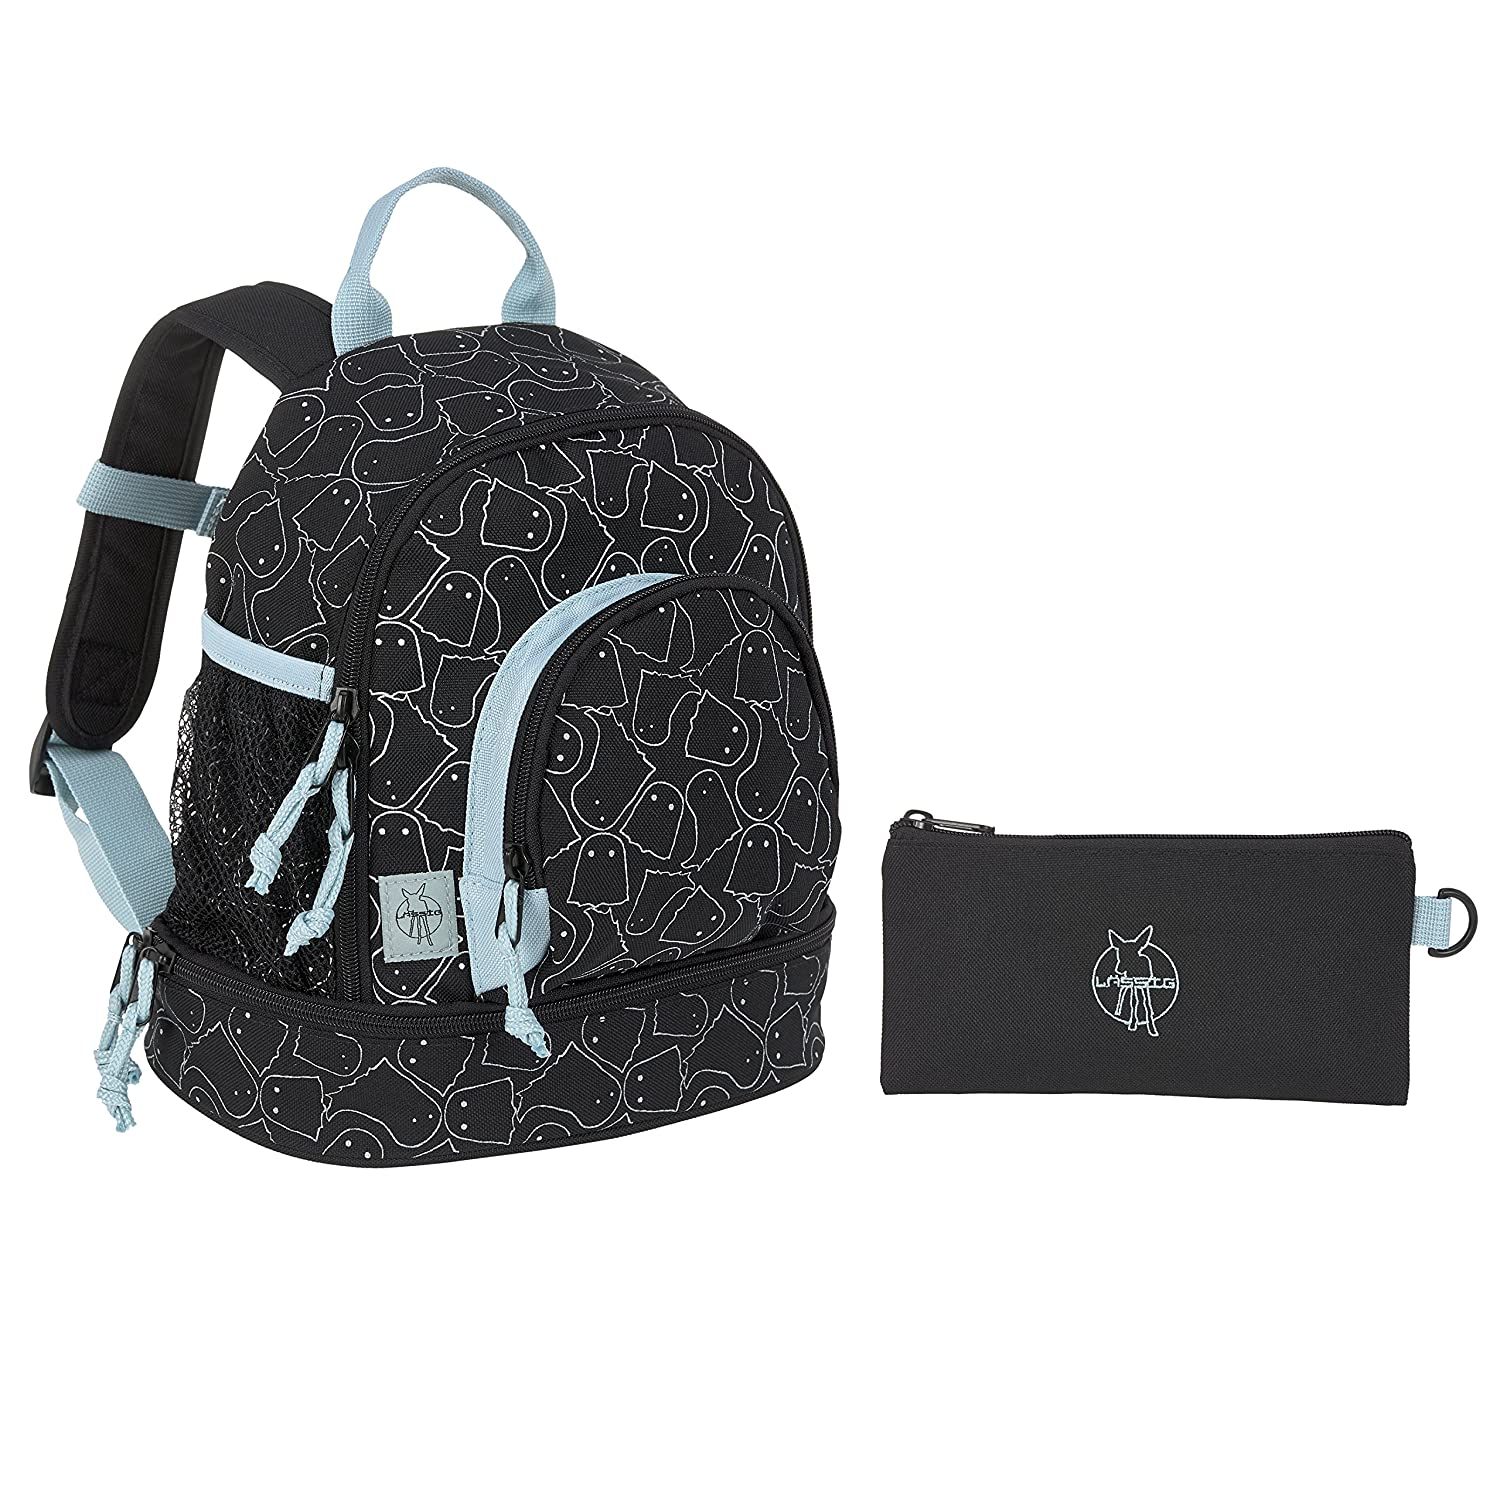 Lässig Mini Backpack Kinderrucksack/Kindergartentasche Spooky rosa 1203001826